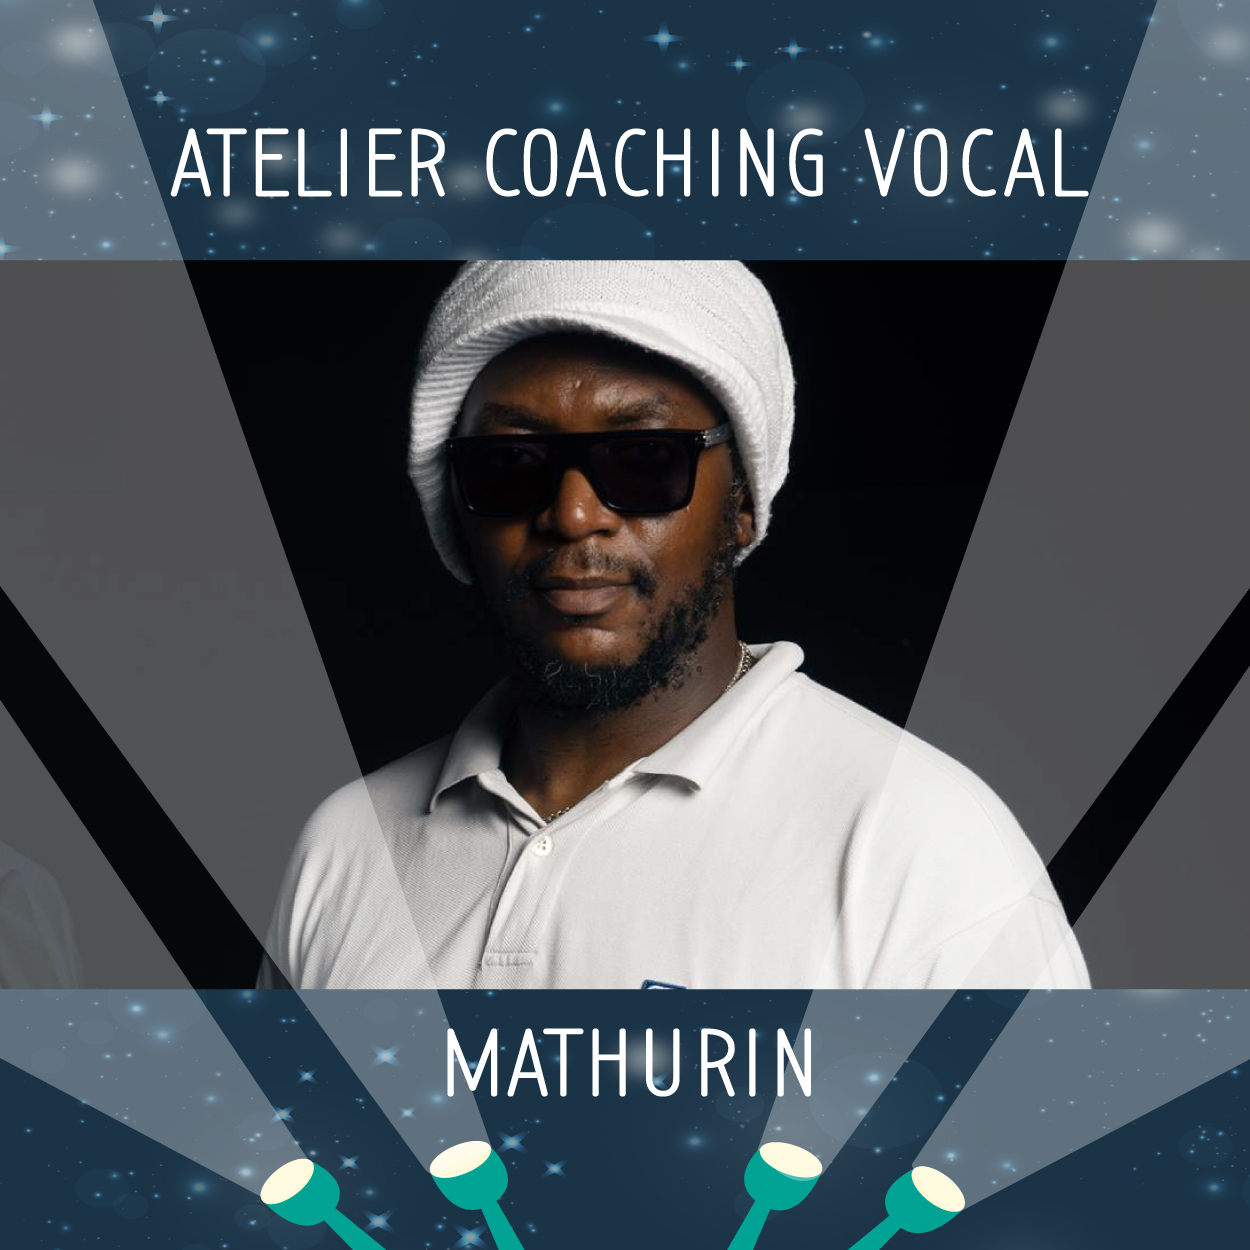 atelier coaching vocal